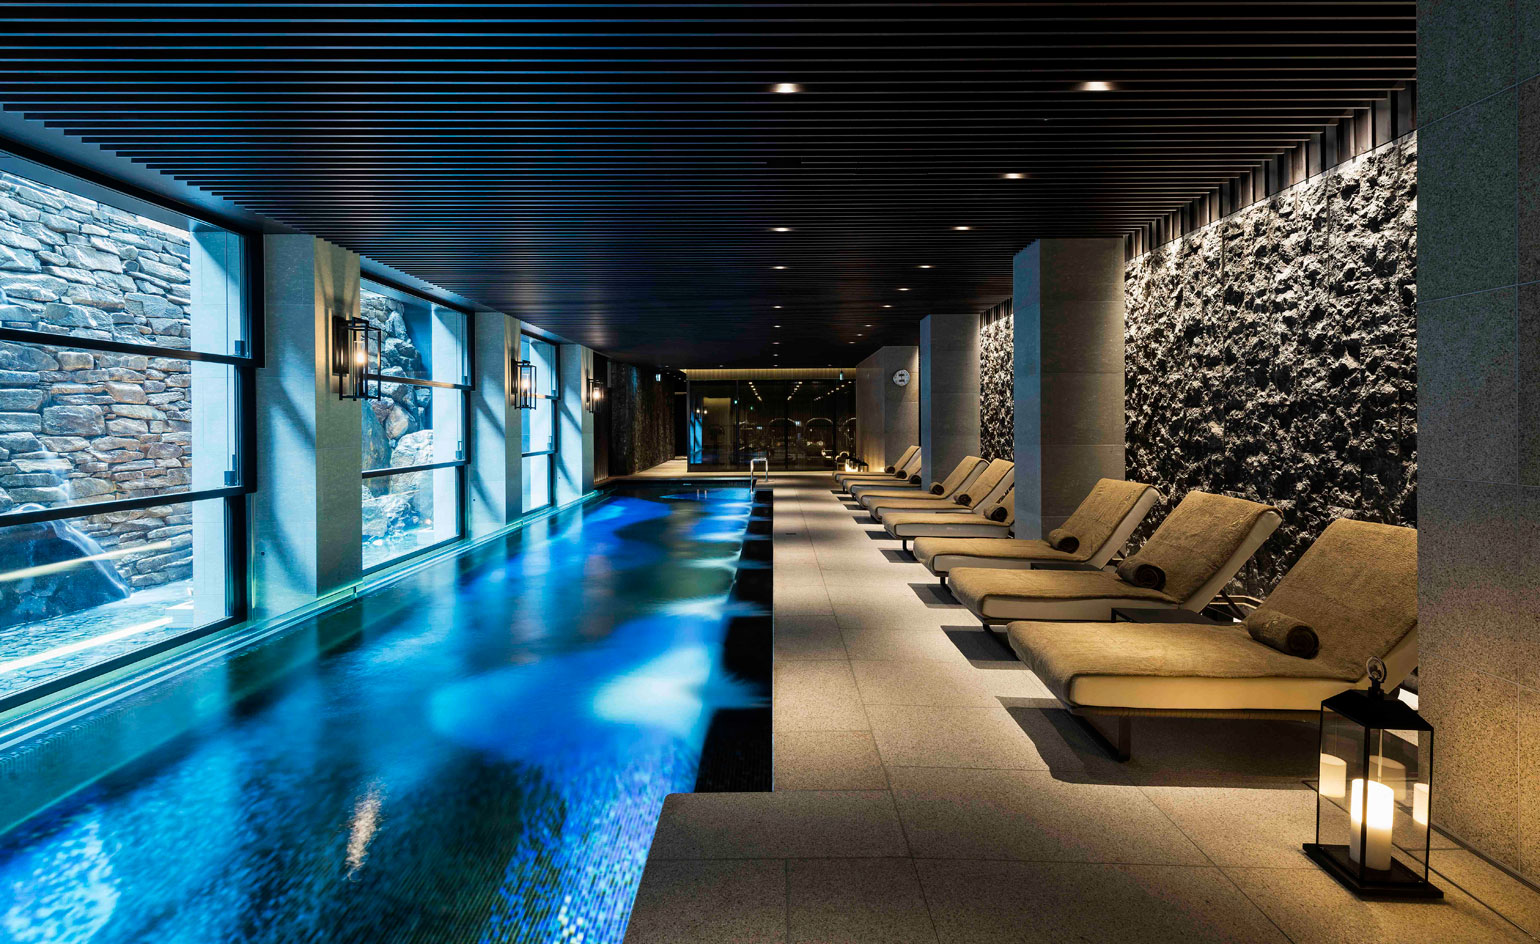 Best urban hotels 2014 by wallpaper ruartecontract blog for Design hotel kyoto